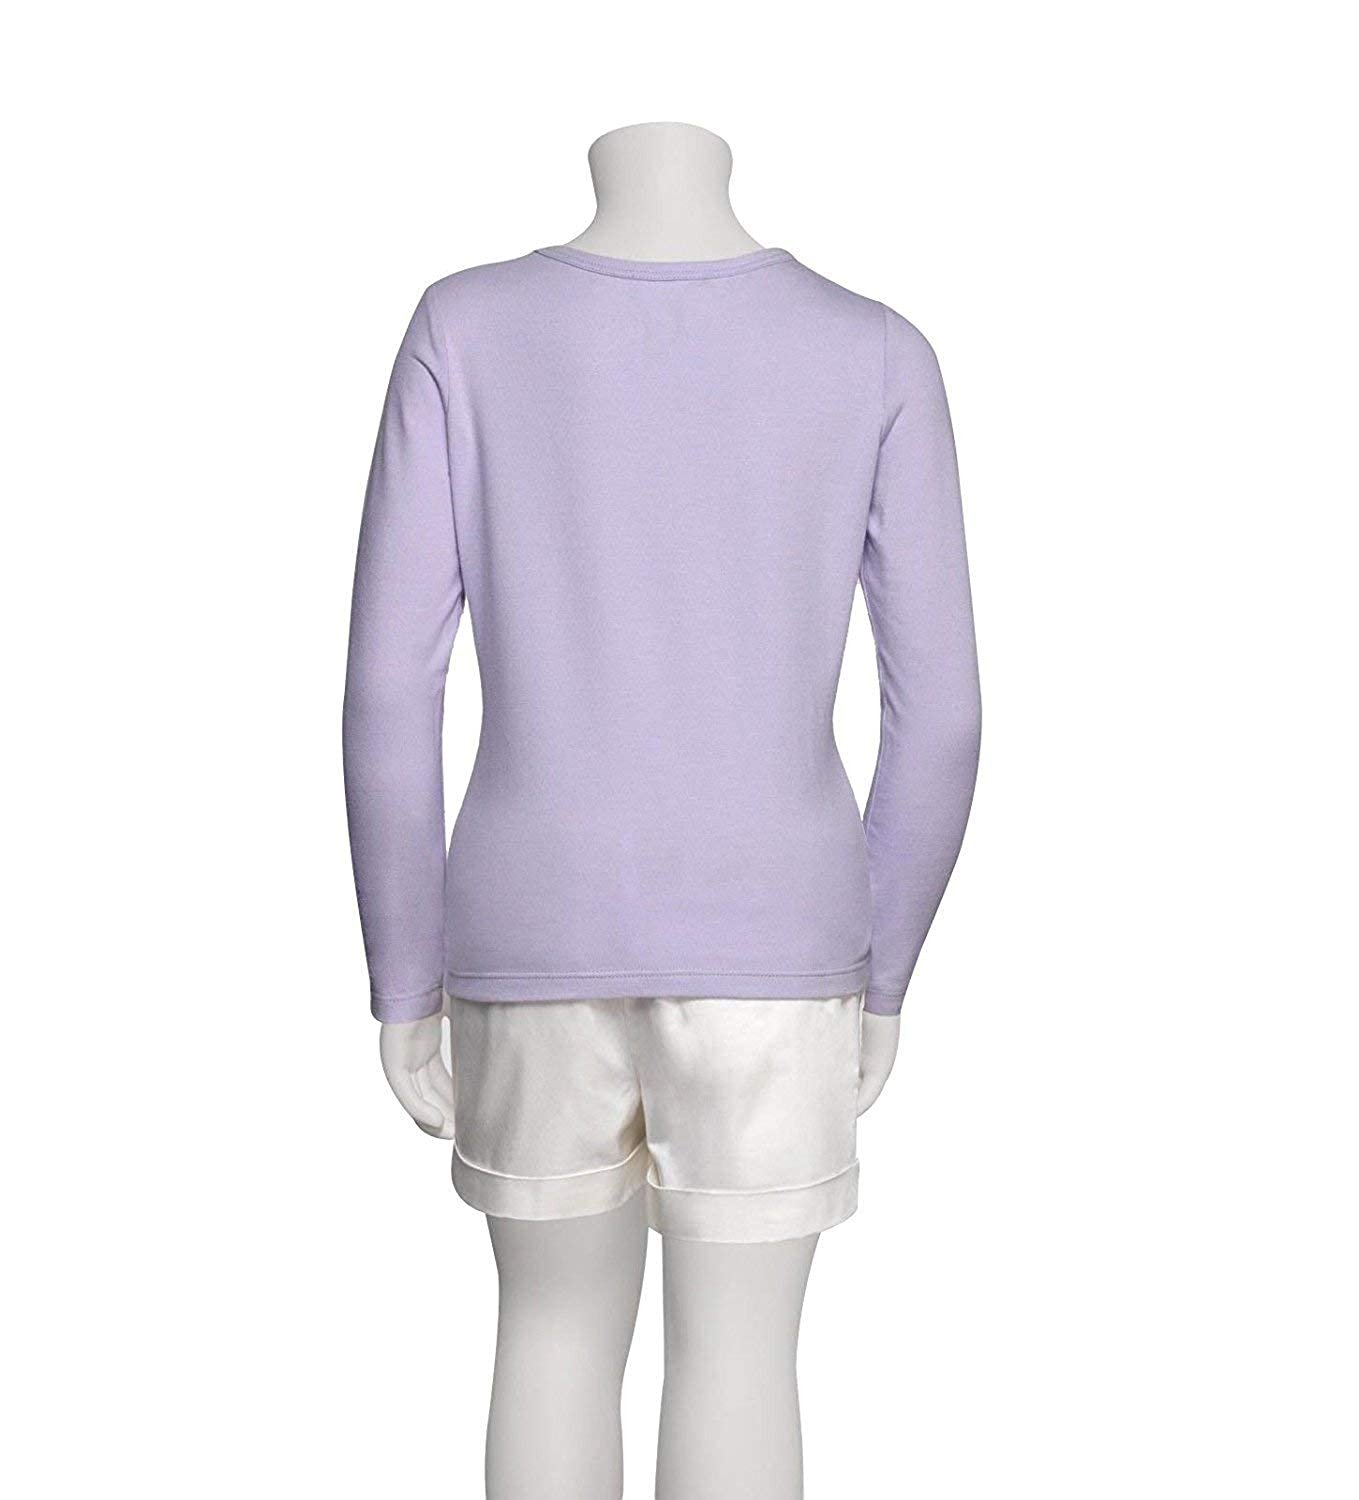 162a8804fcb Amazon.com  Gucci Kid s Lilac Cotton Elastane Butterfly Embroidery Long  Sleeve Top T Shirt 258571  Clothing